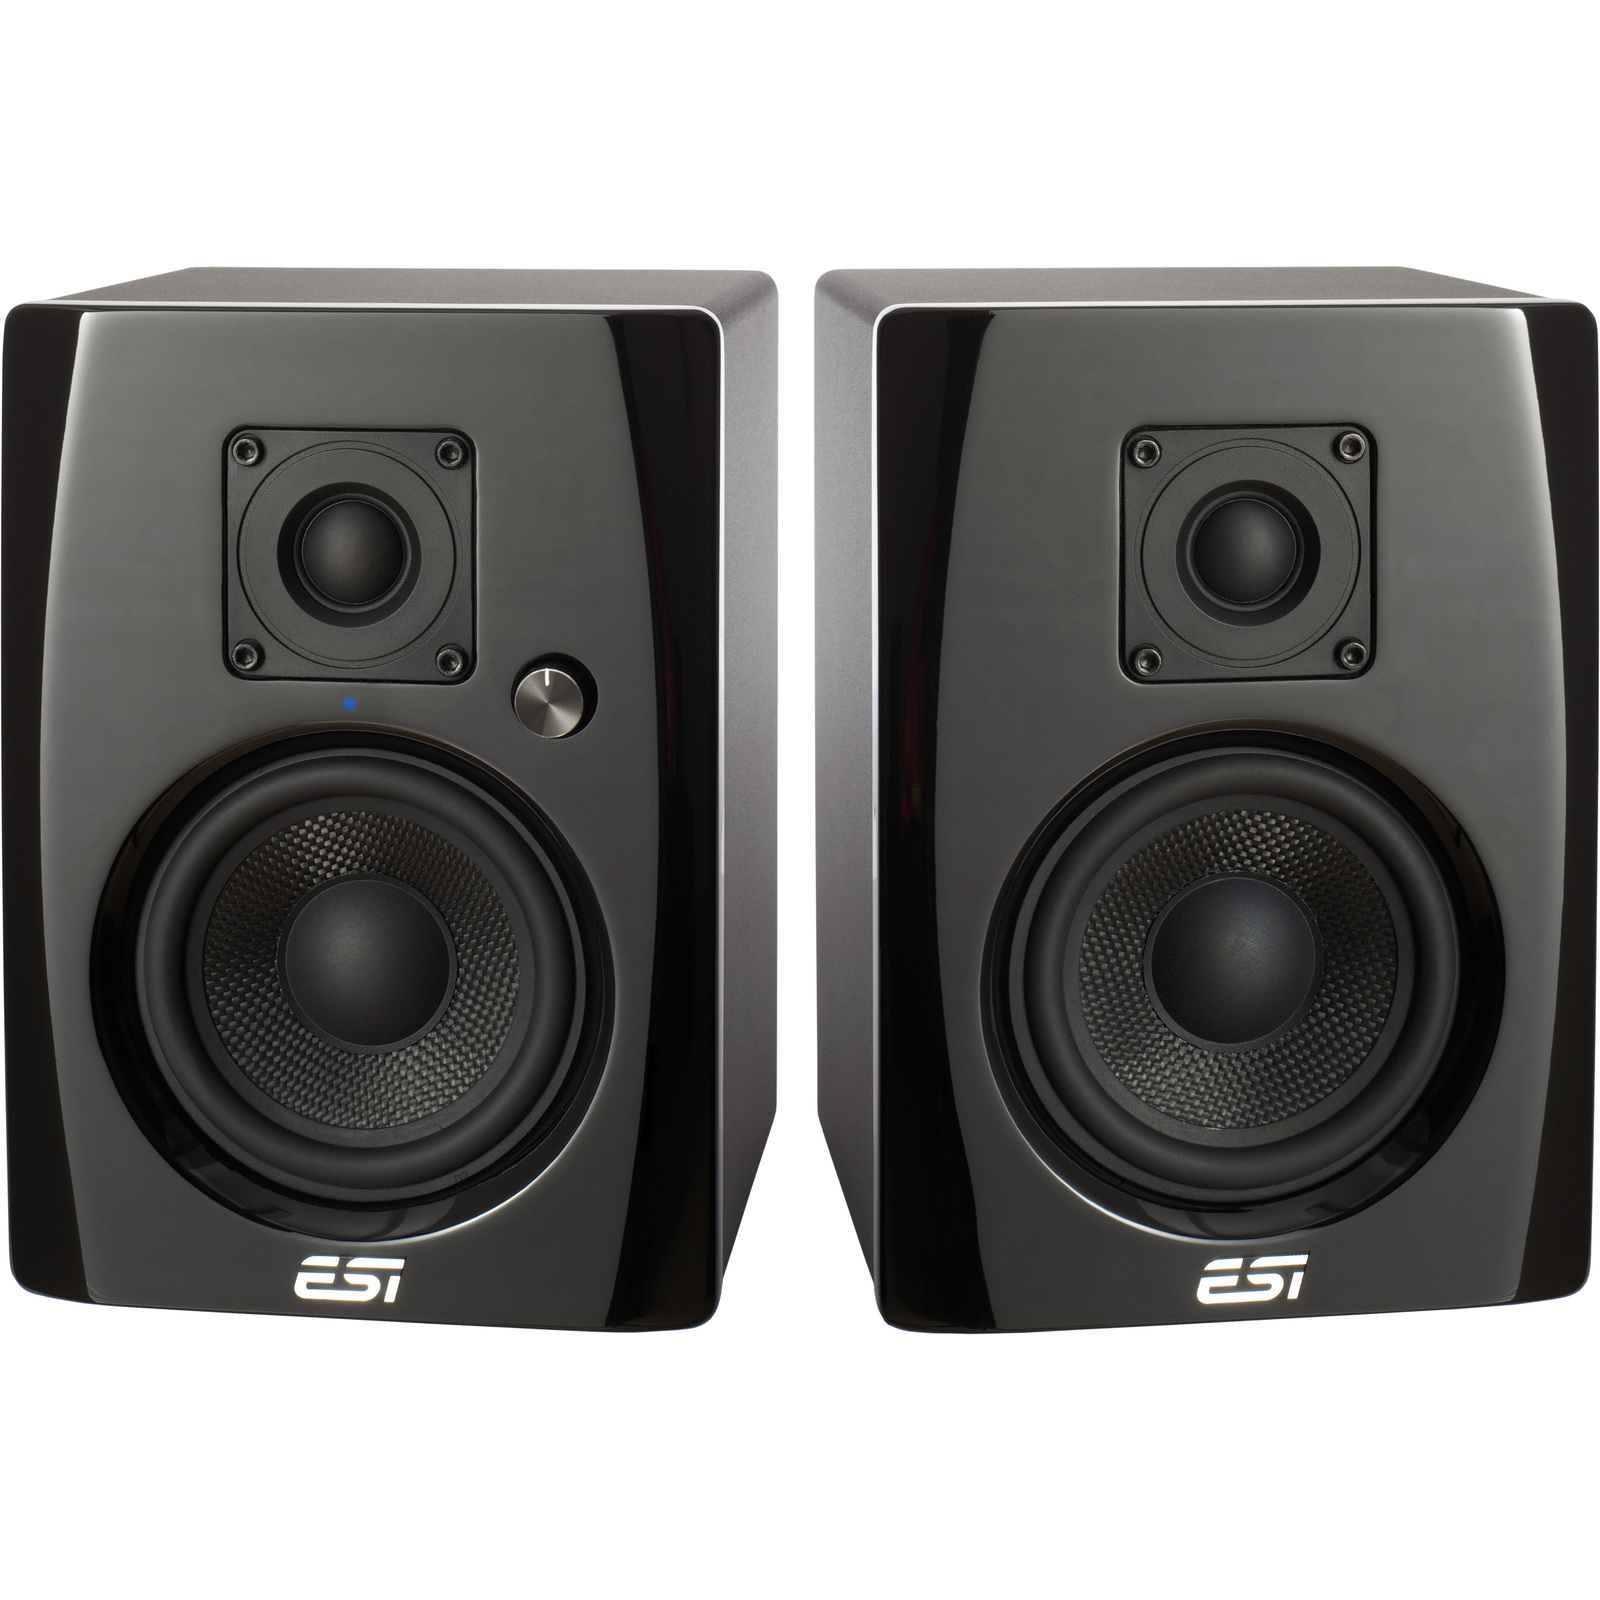 ESI Unik04 4 inch studio monitors pair